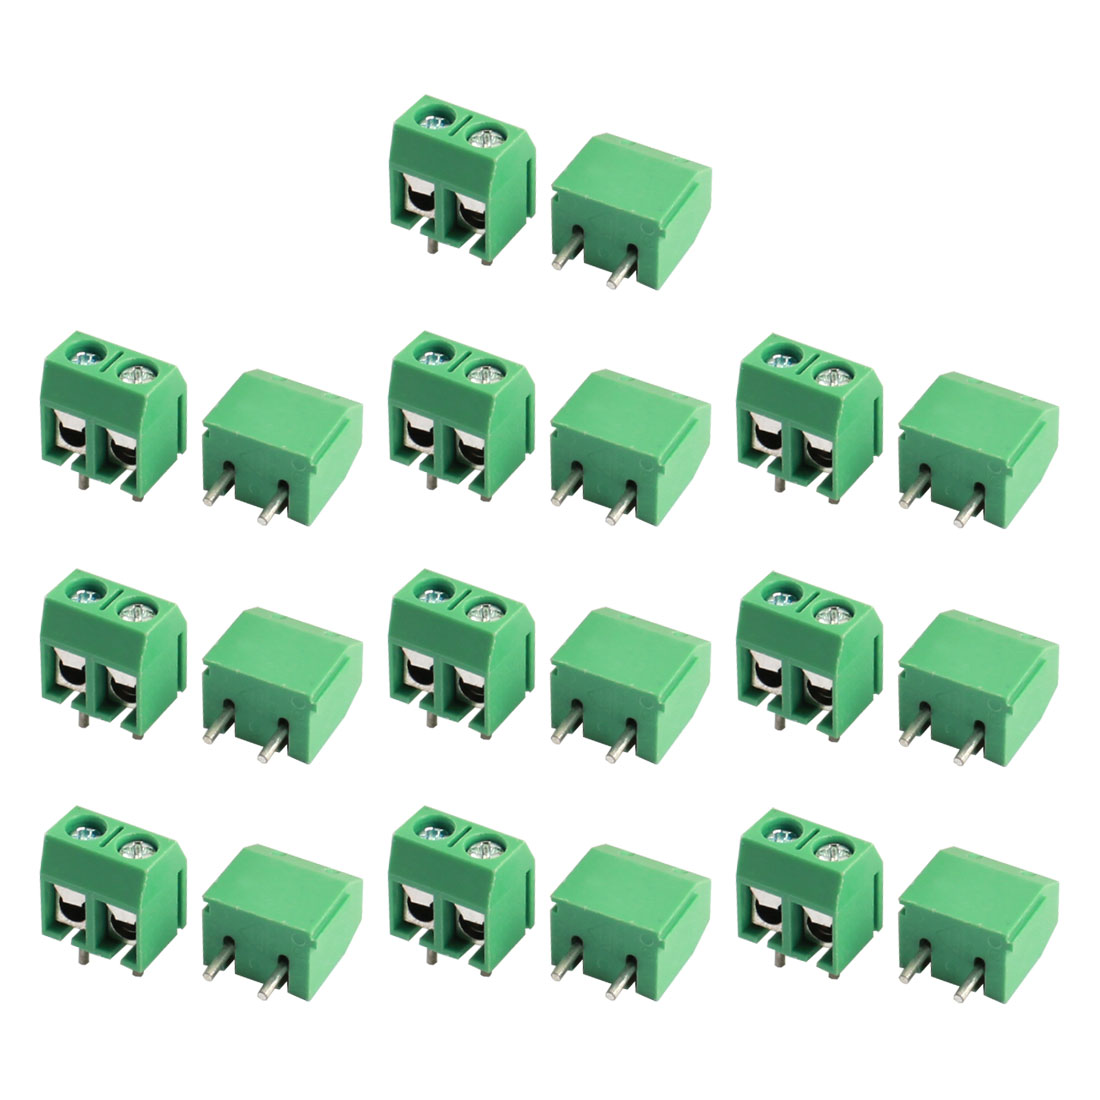 20Pcs 12A 300V 2Way Barrier Screw Terminal Block Connector 5.08mm Pitch Green